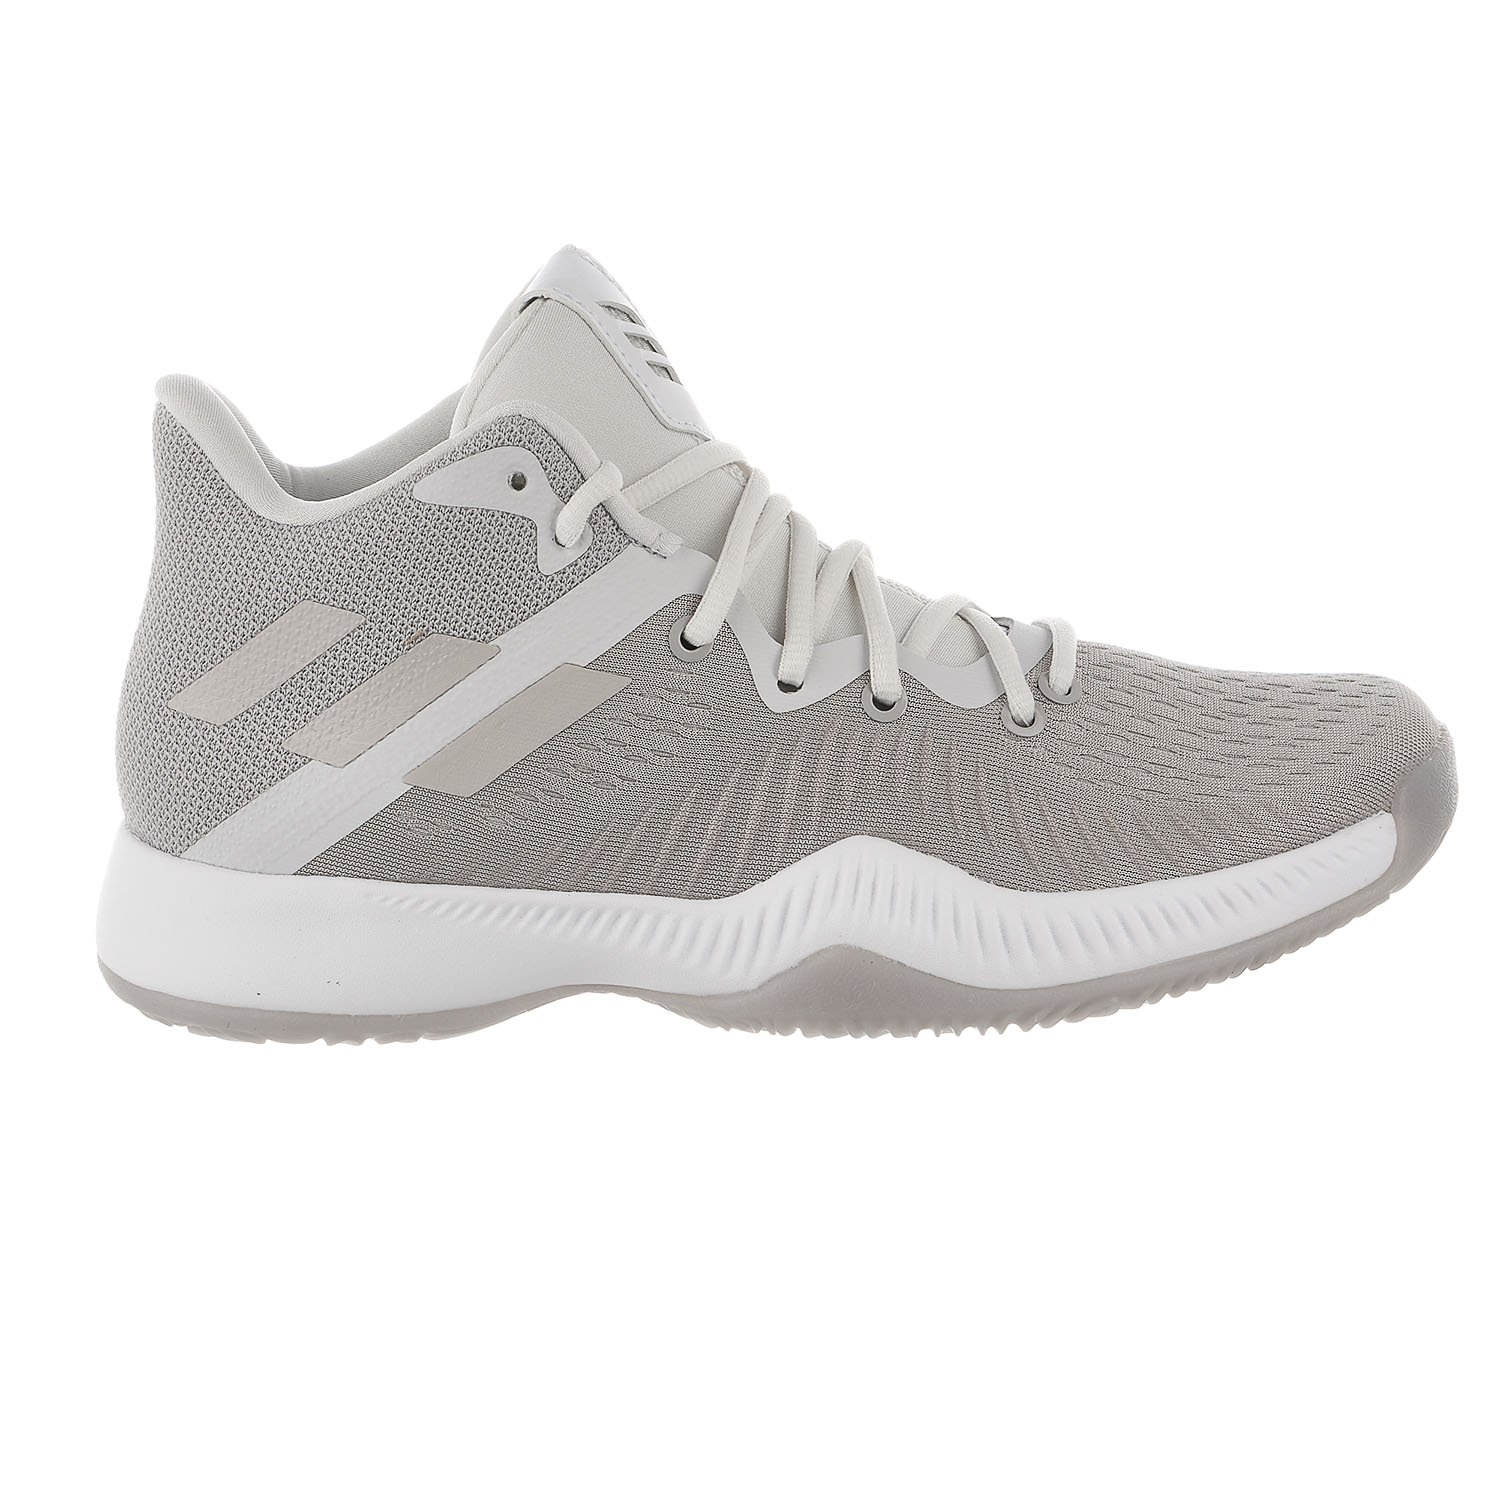 4584cd85bd0 Galleon - Adidas Men s Mad Bounce Basketball Shoe